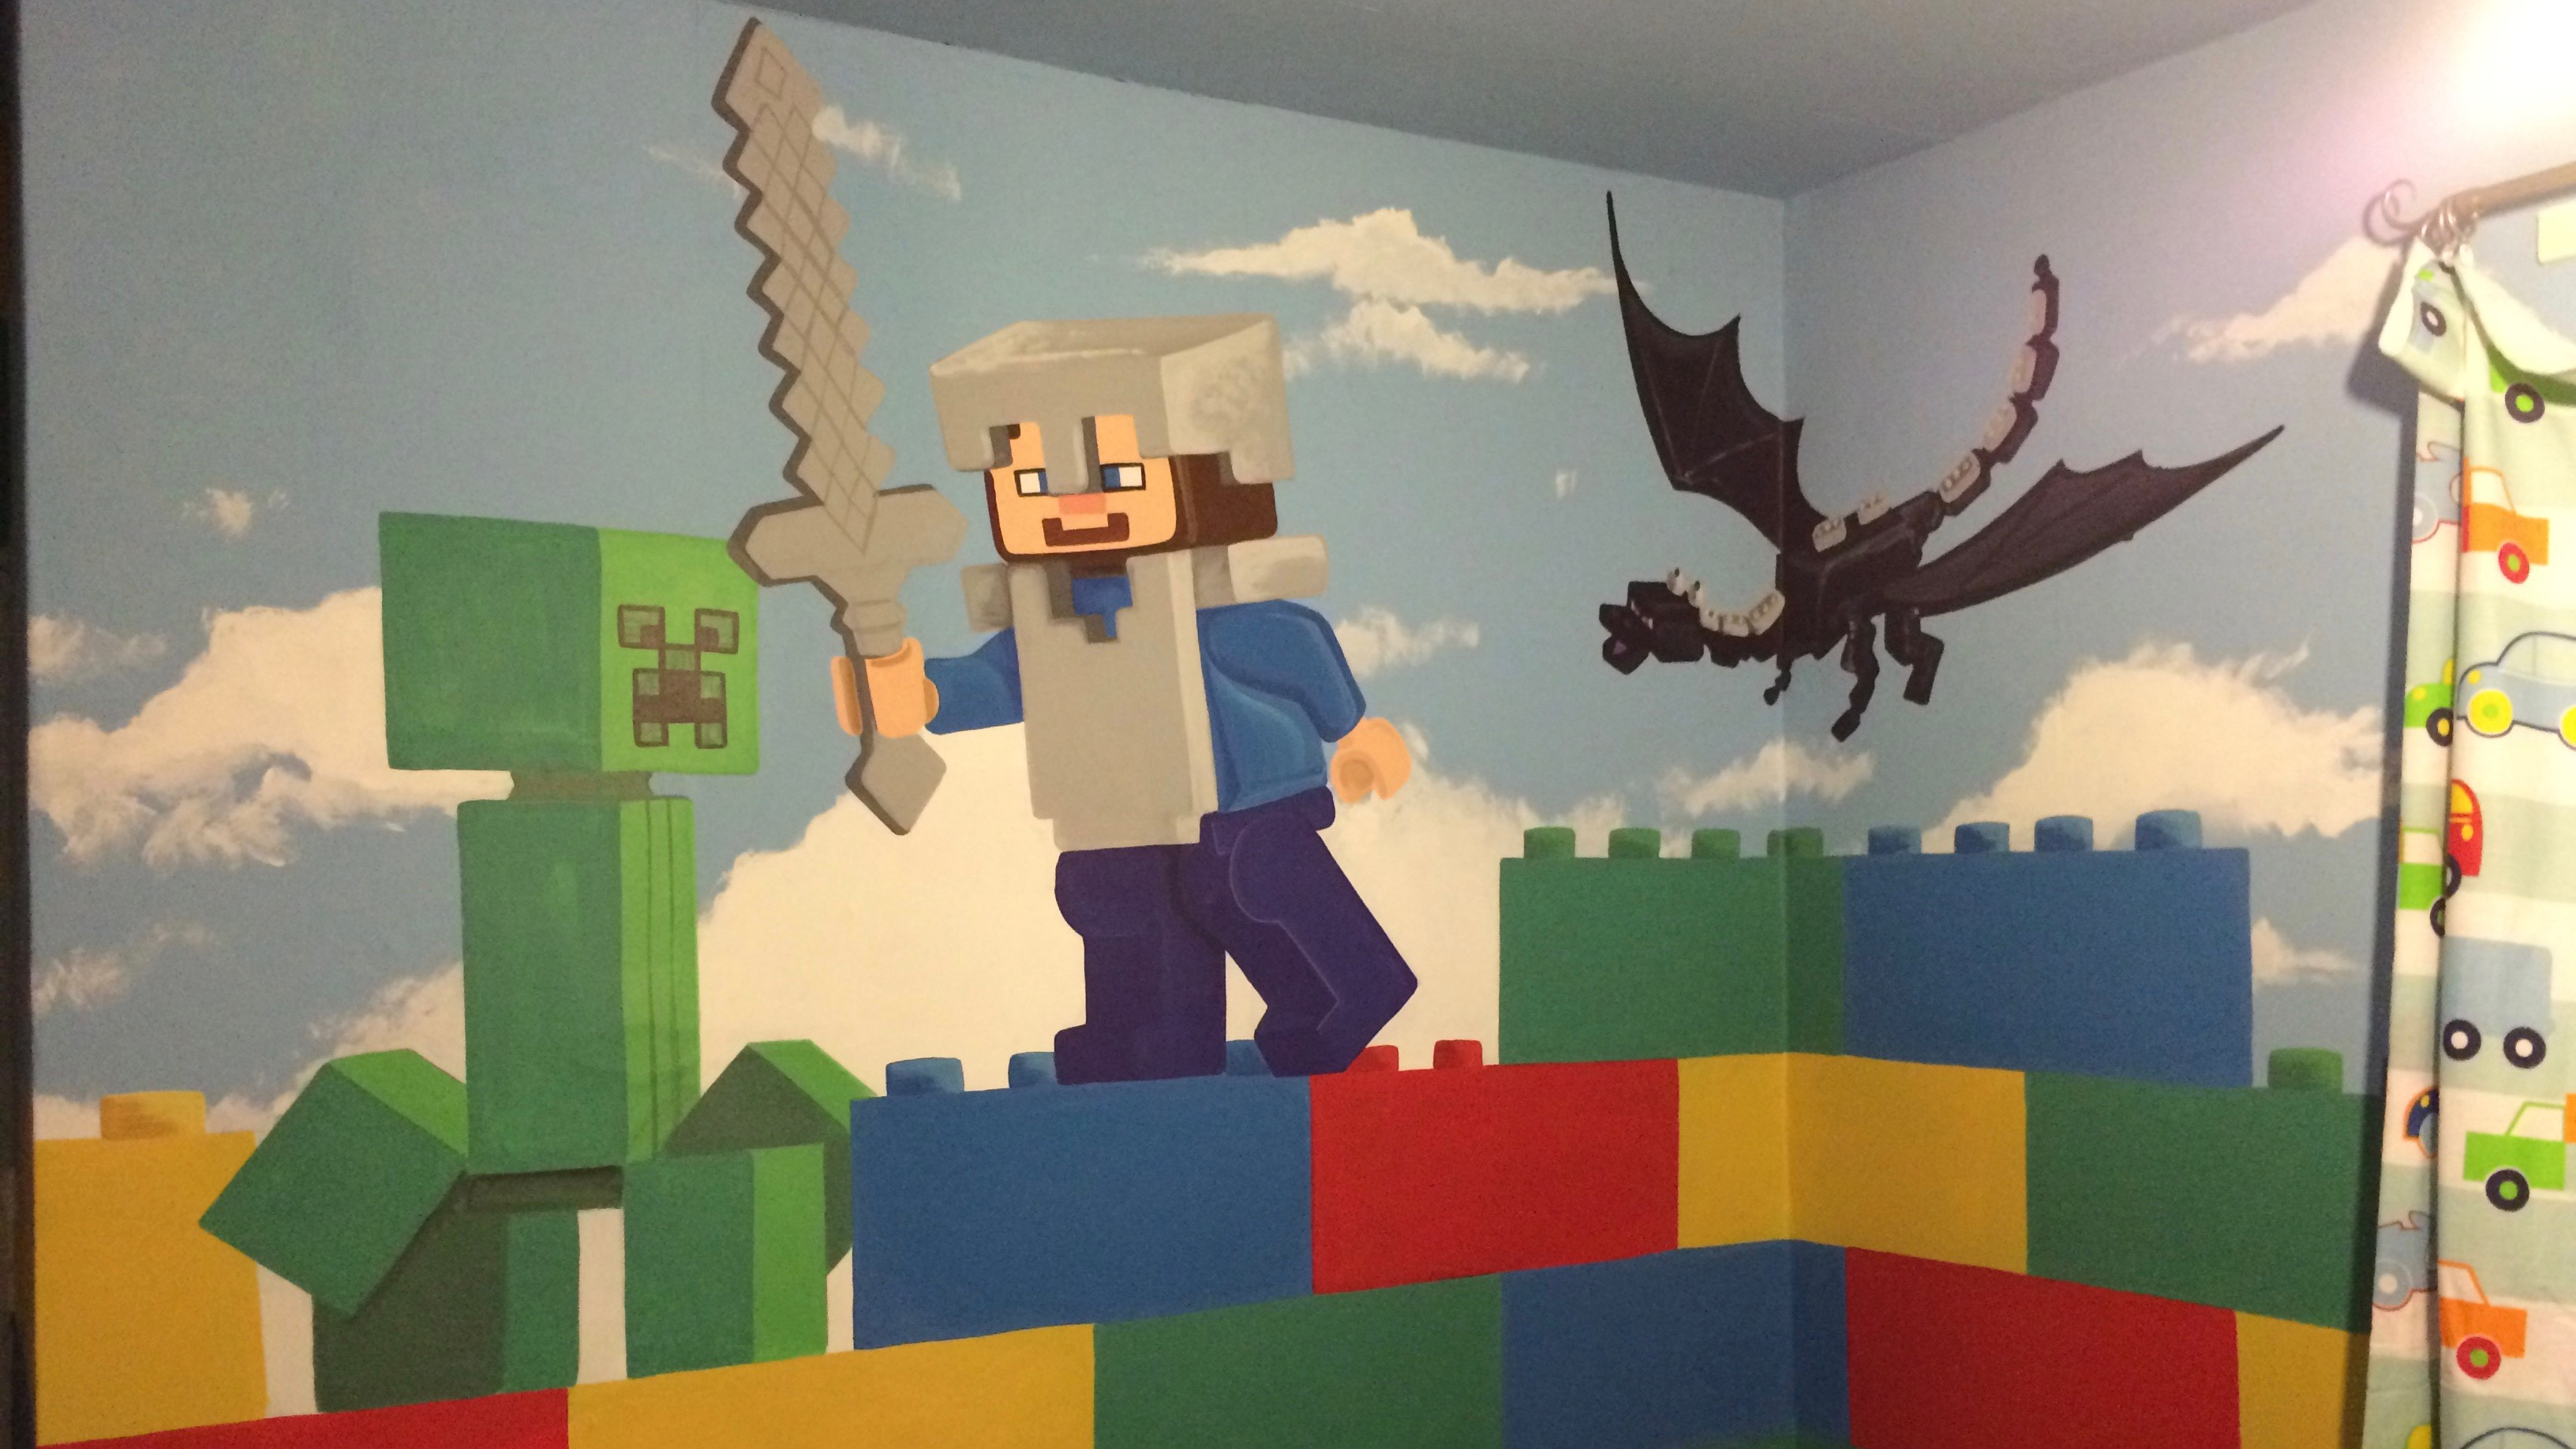 Lego Minecraft Room Mural